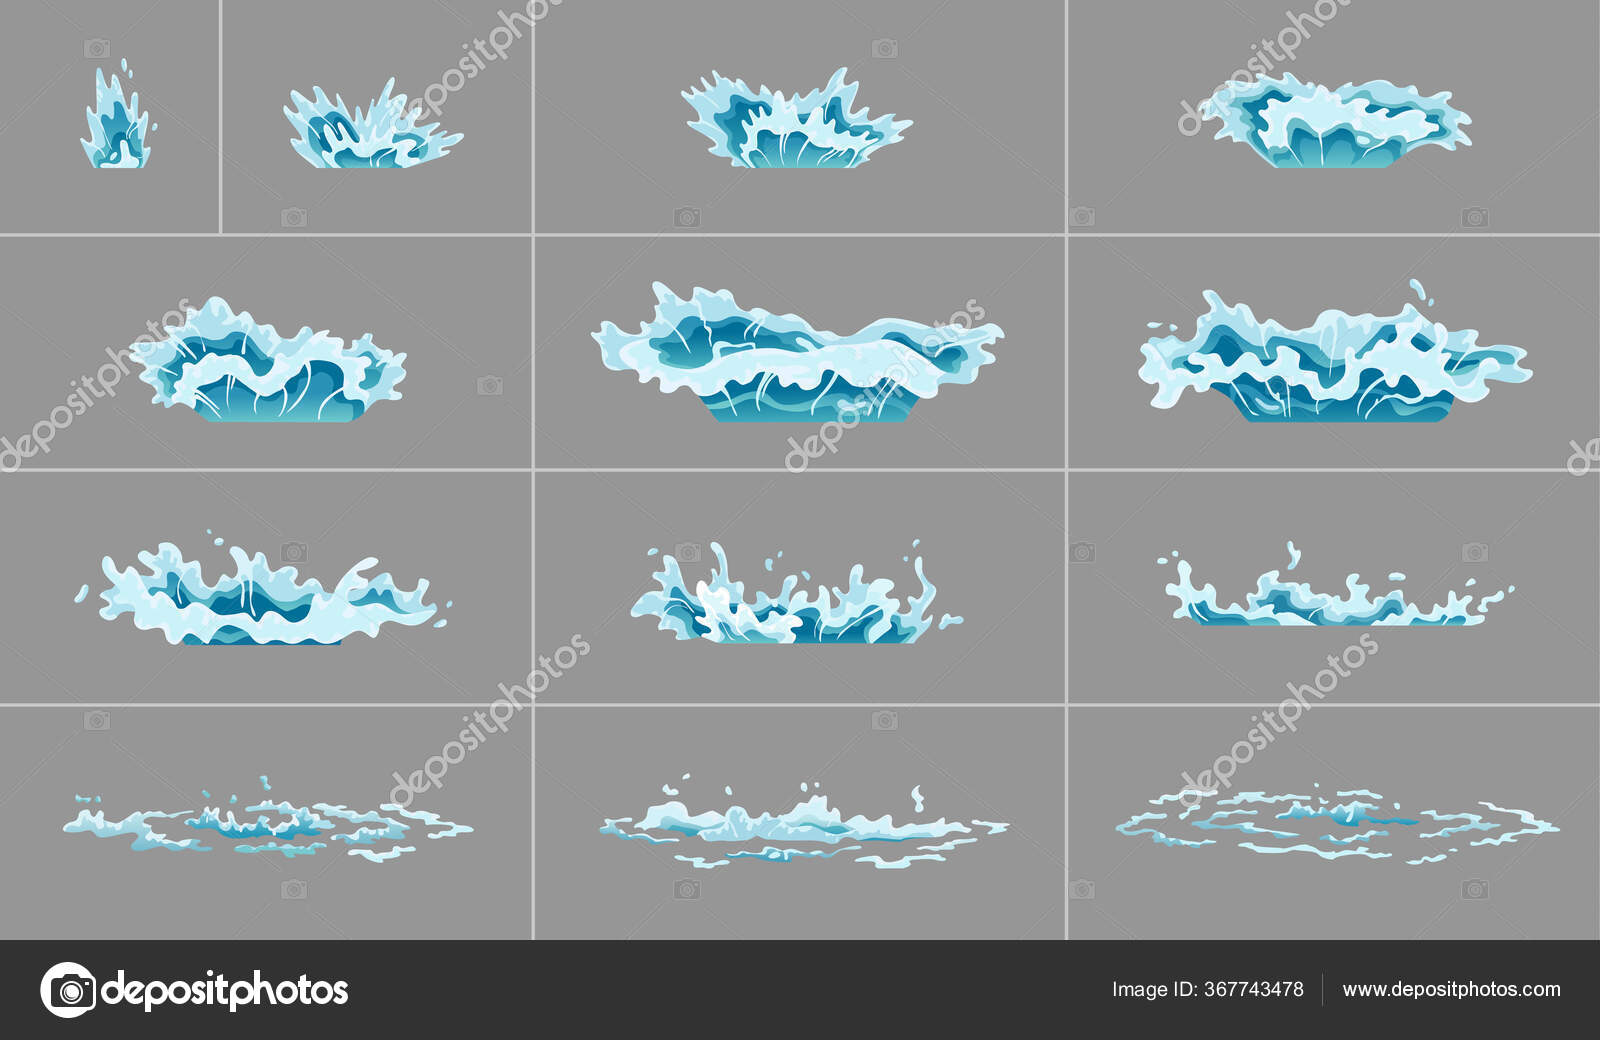 sprite water splash animation shock waves on transparent background spray motion spatter blast drip clear water frames for flash animation in games video and cartoon stock vector c the8monkey gmail com 367743478 https depositphotos com 367743478 stock illustration sprite water splash animation shock html